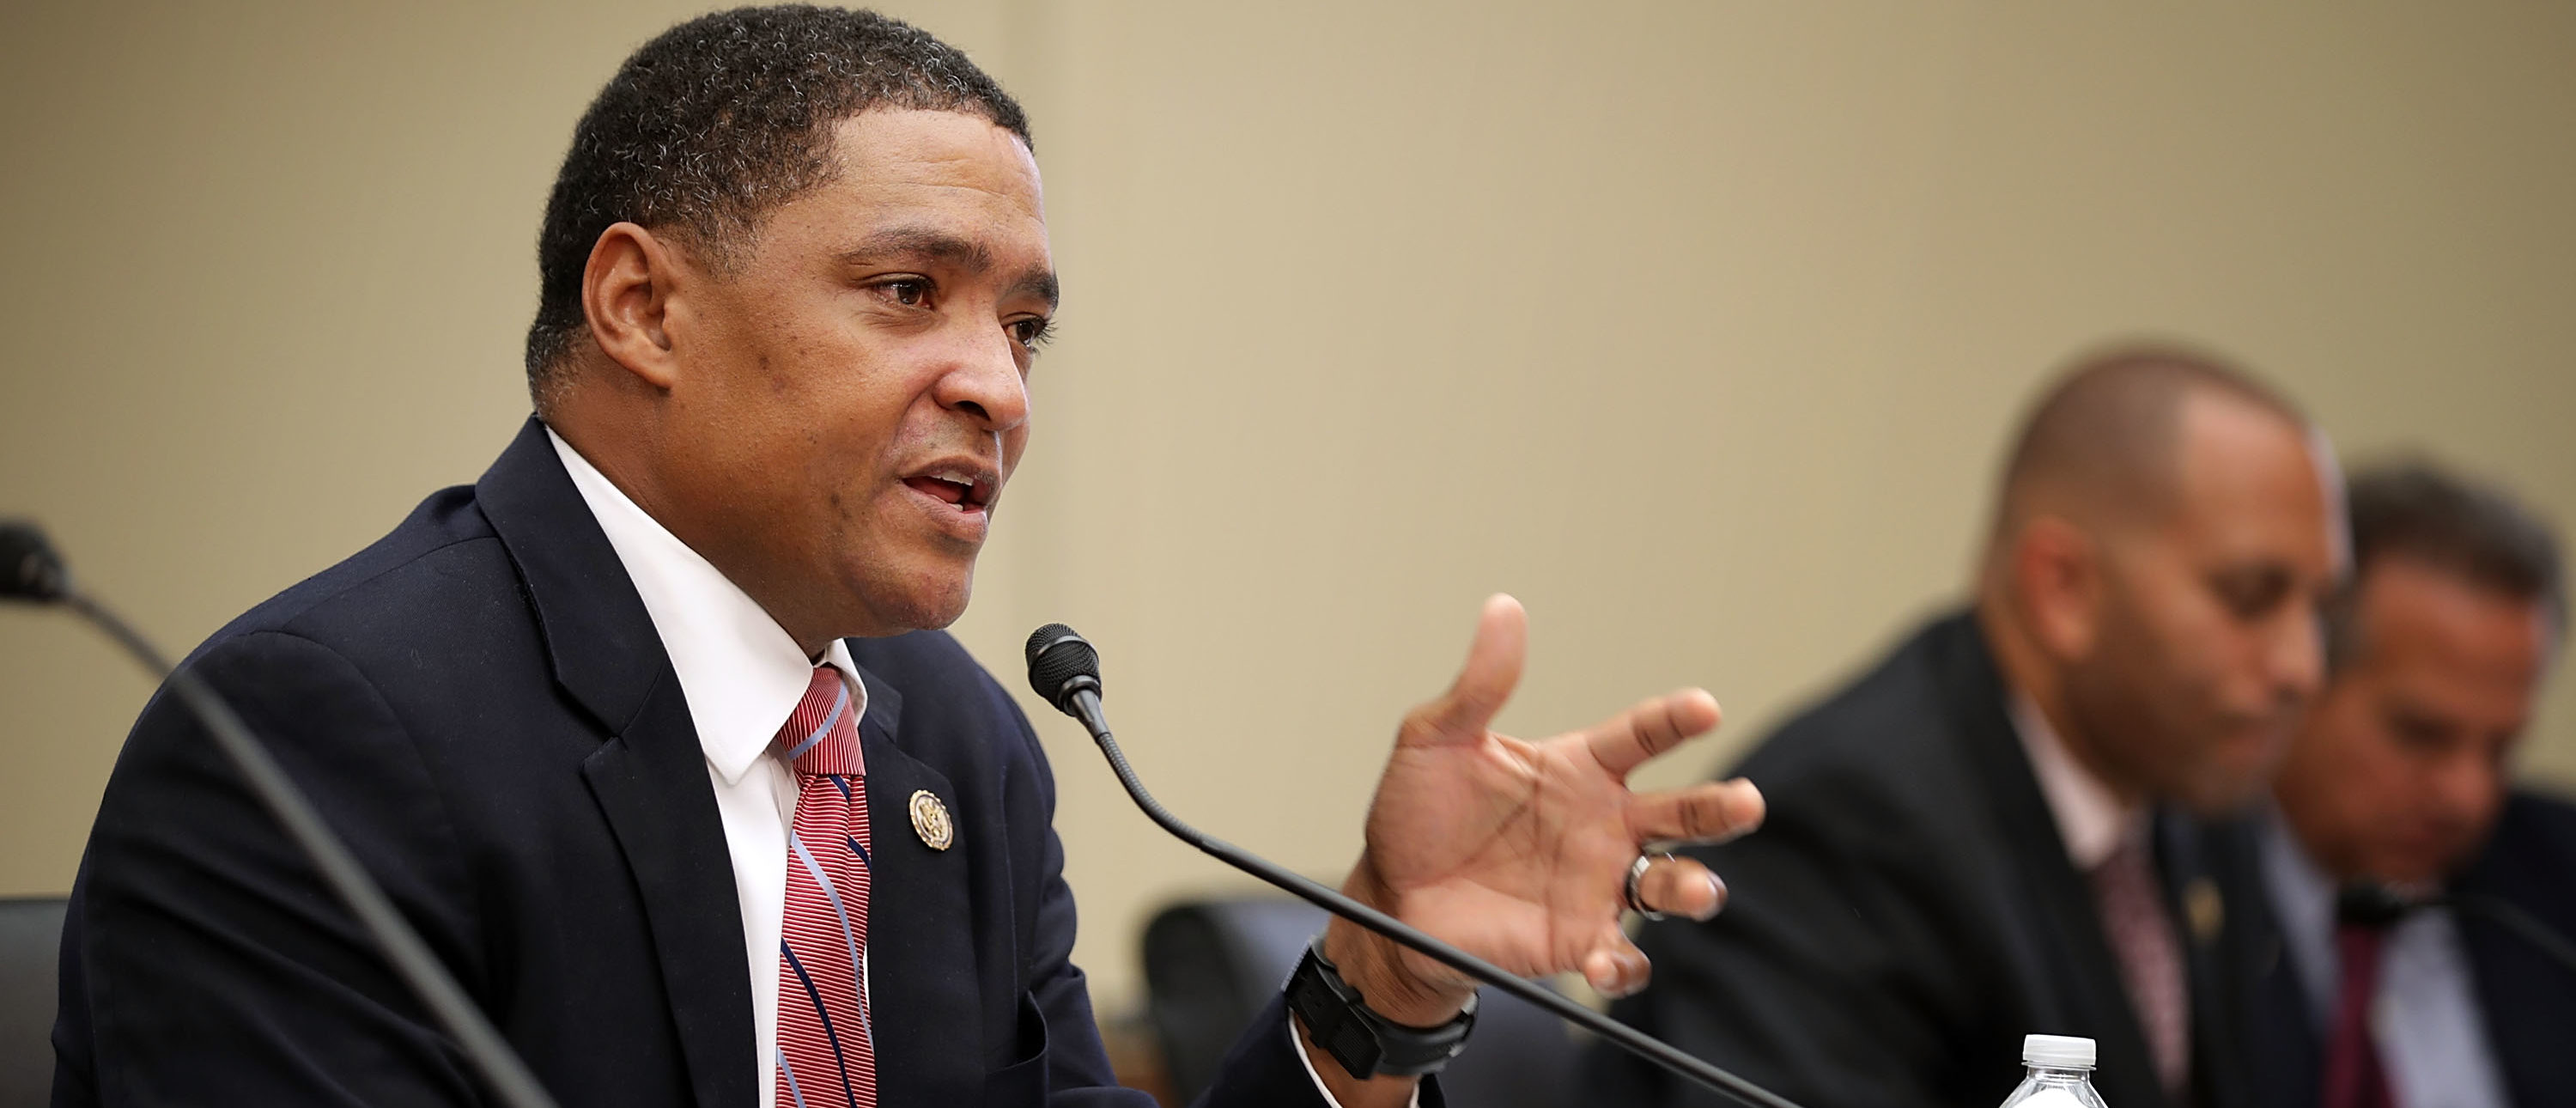 House Judiciary Committee member Rep. Cedric Richmond questions Internal Revenue Service Commissioner John Koskinen during a hearing in the Rayburn House Office Building on Capitol Hill September 21, 2016 in Washington, D.C. (Photo by Chip Somodevilla/Getty Images)